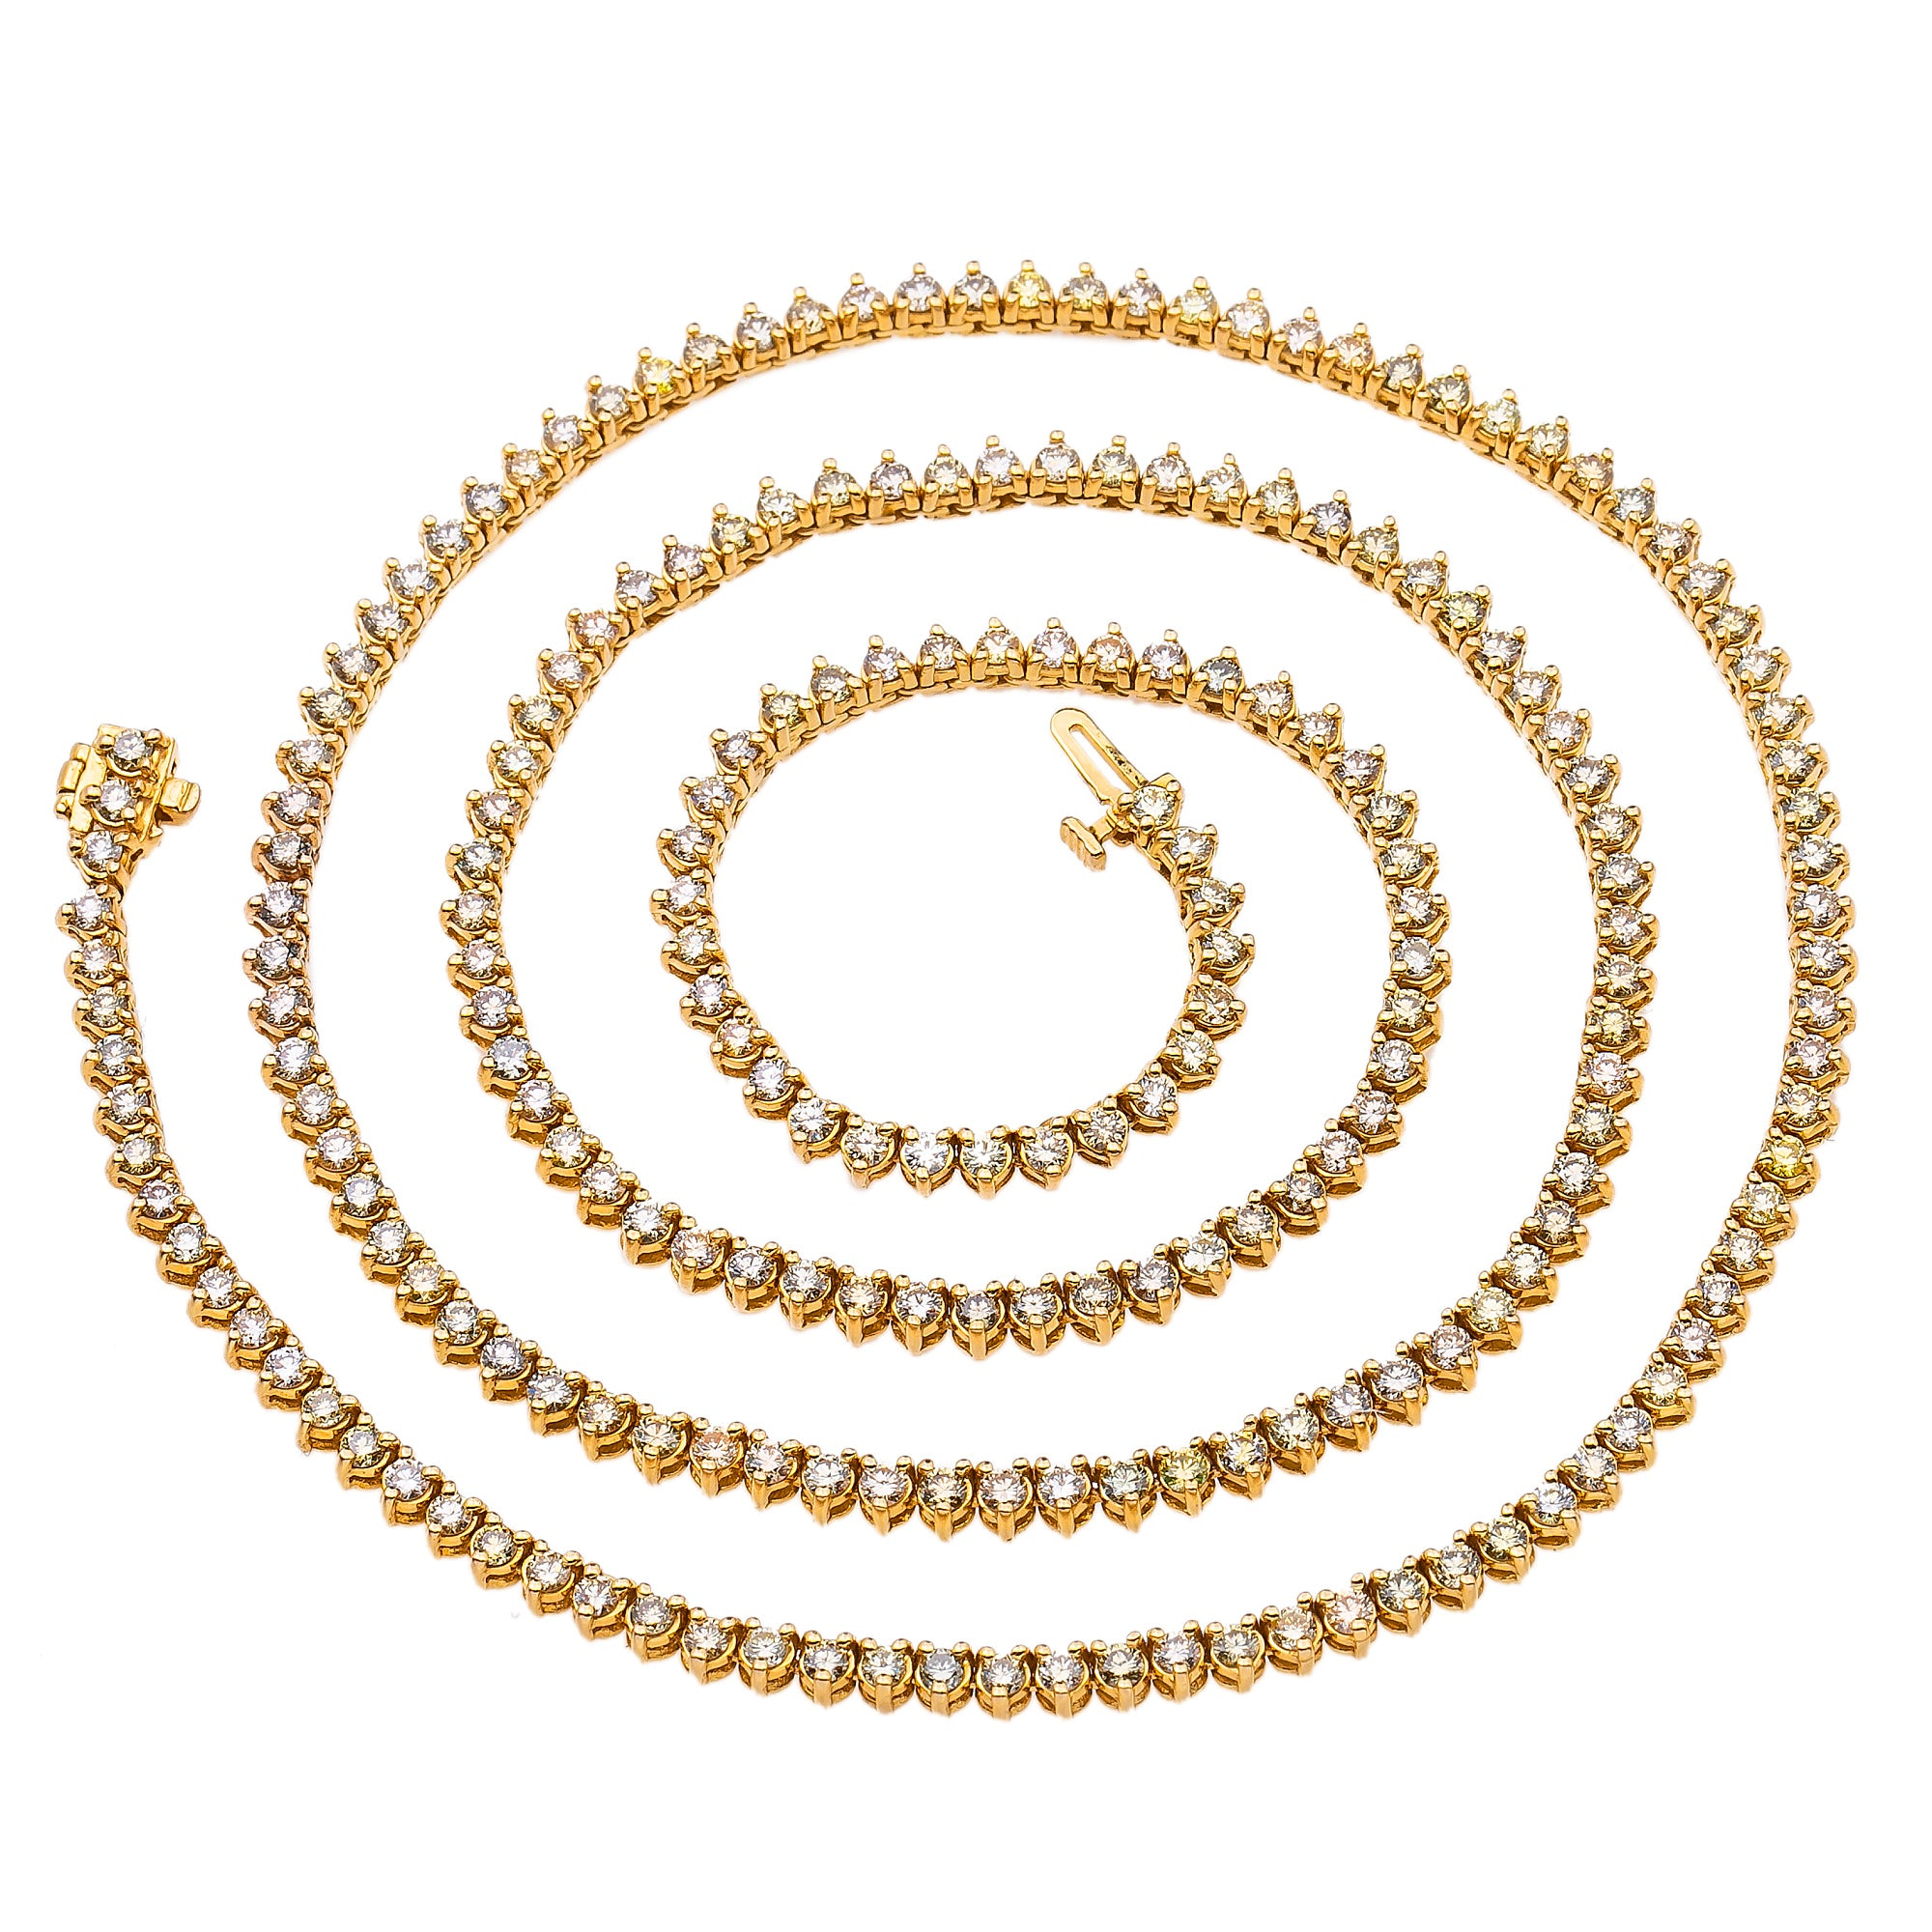 14K Yellow Gold Men's Tennis Chain With 12.00 CT Diamonds